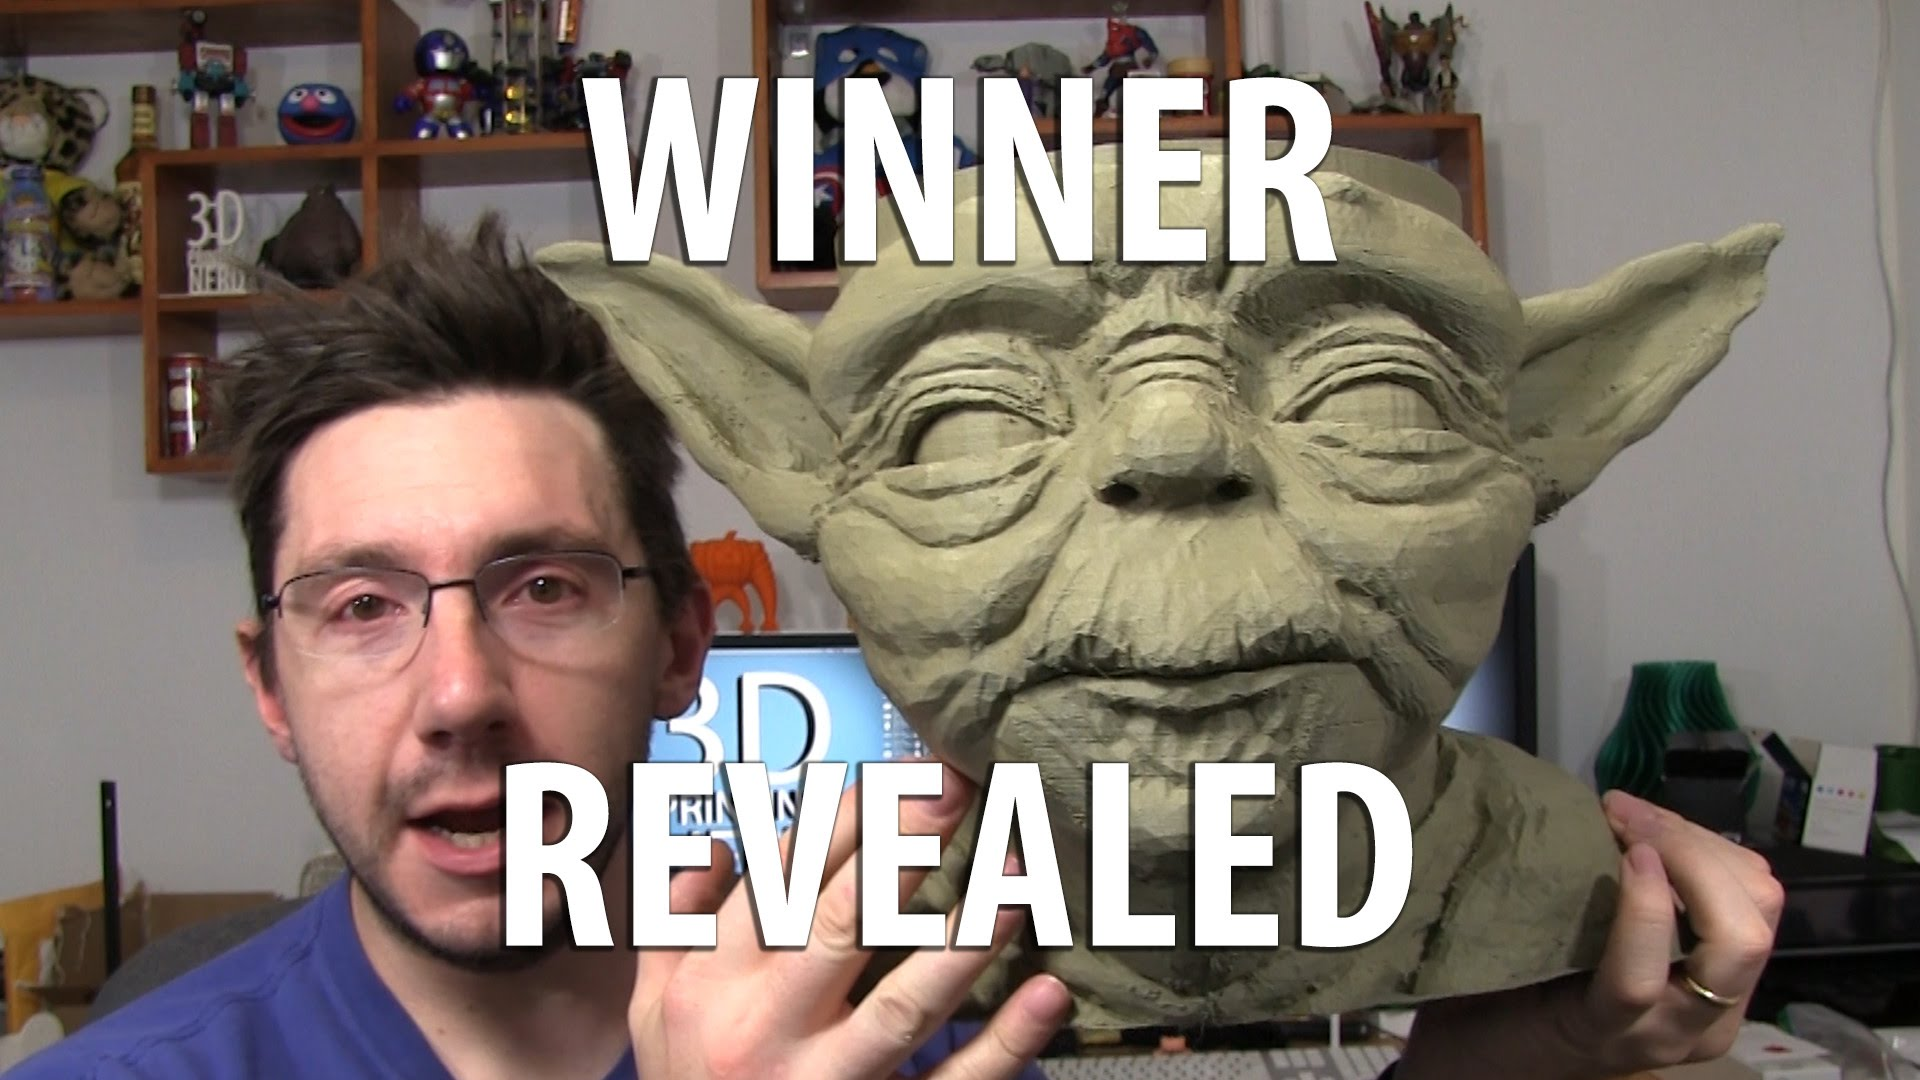 3D Printed Yoda Bowl Winner Announced